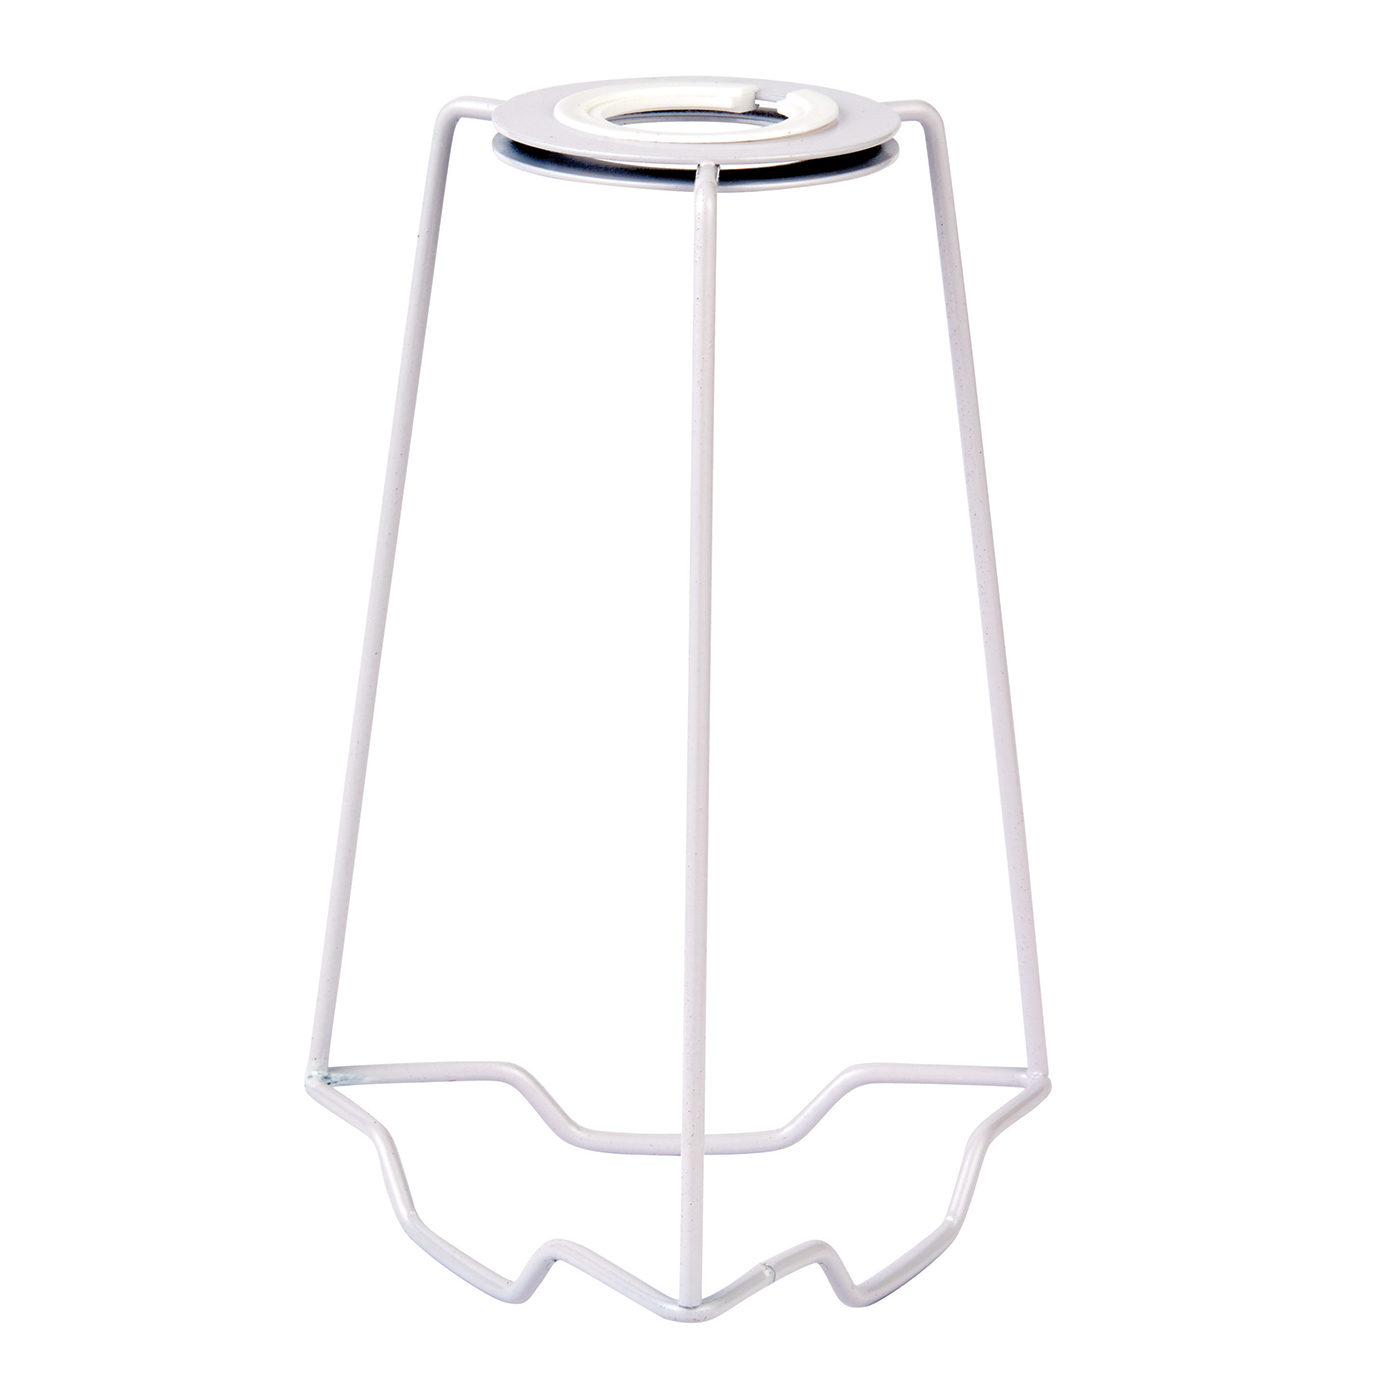 Endon SC-7 lampshade carrier 7 inch Gloss white 195mm height x 125mm diameter Thumbnail 1